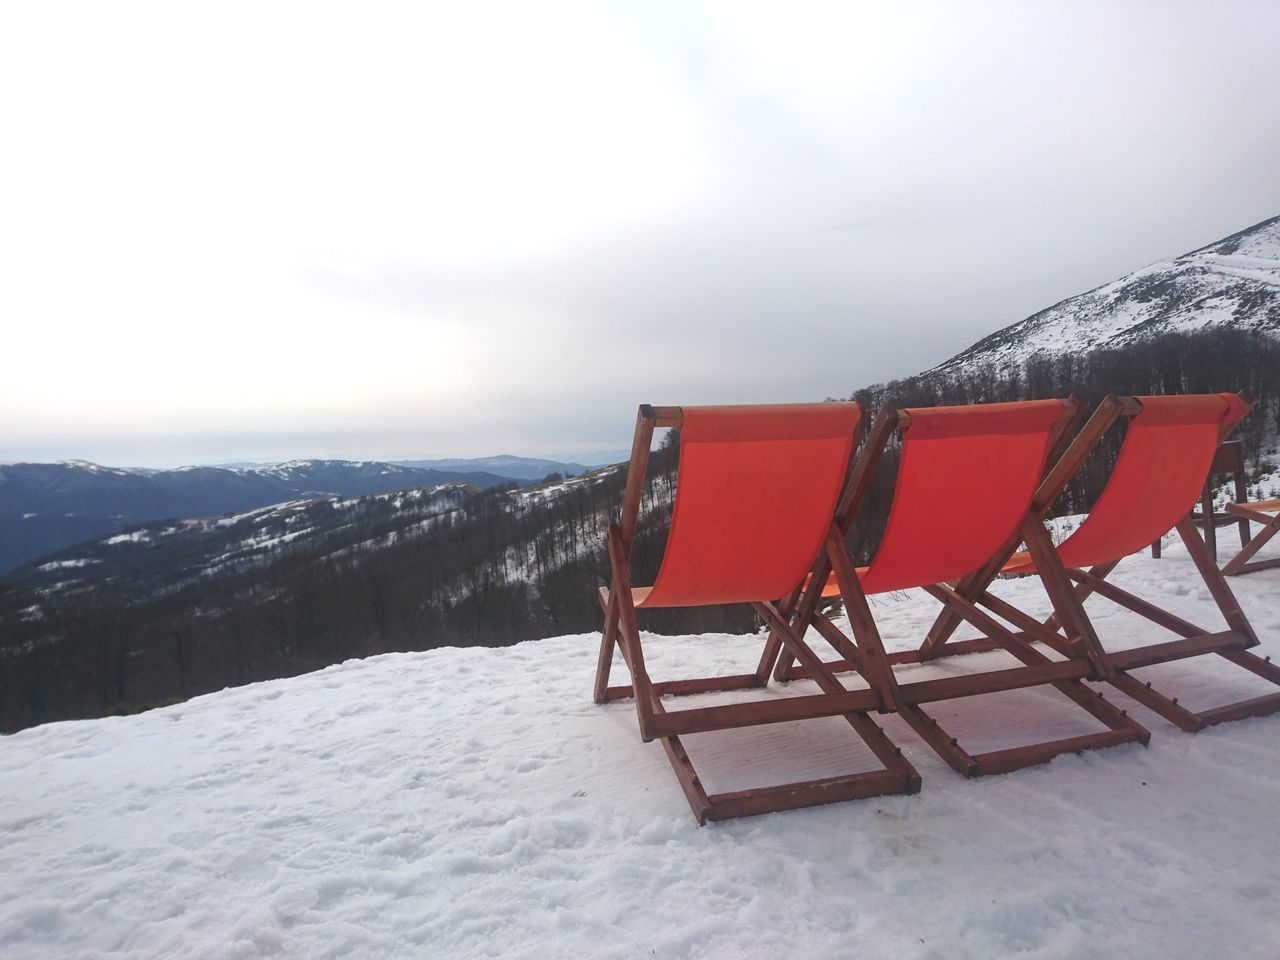 Winter Snow Cold Temperature Snowcapped Mountain Sport Nature Sky No People Outdoors Landscape Mountain Day Beach Chairs Winter Low Angle View Ski Resort  Tranquility Beauty In Nature Cloud - Sky Serbia Stara Planina Gloomy Weather Mysterious